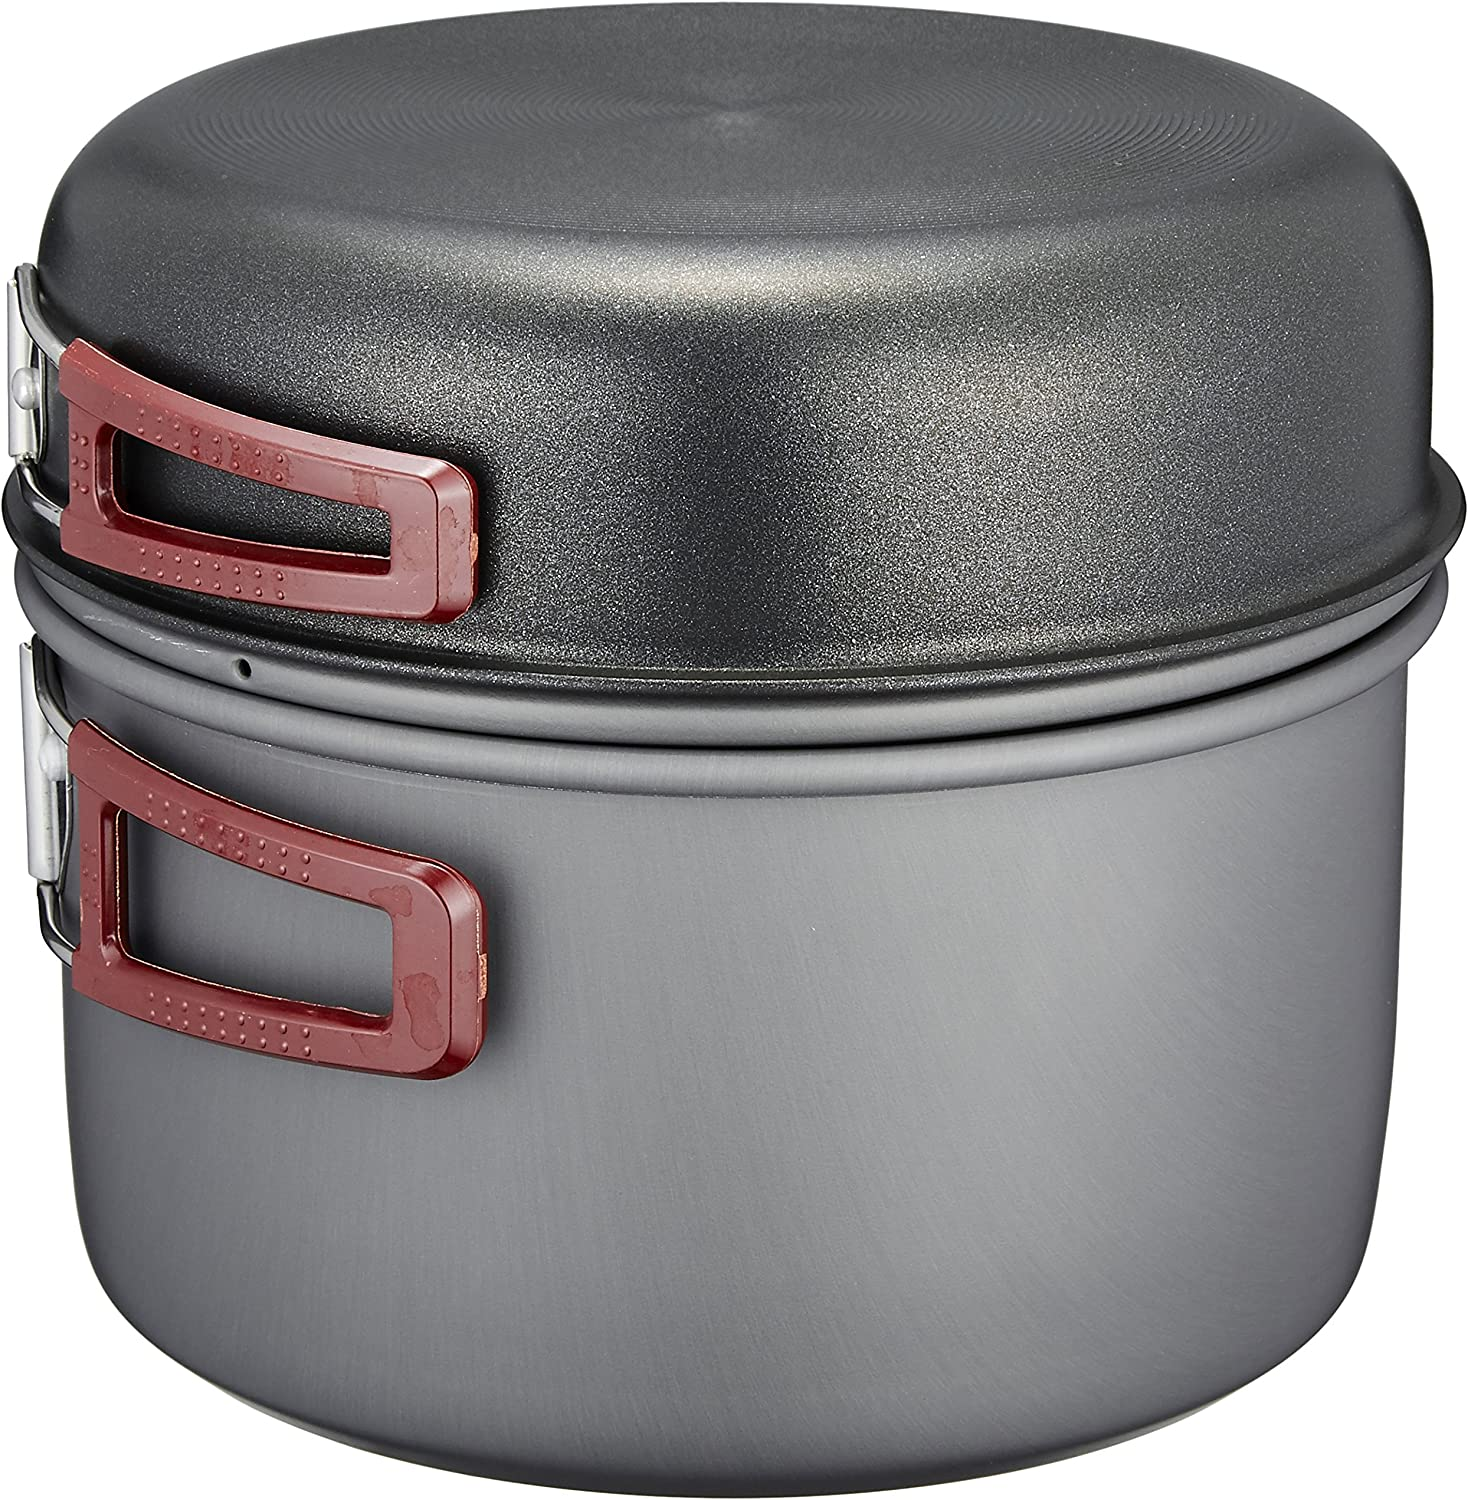 KOVEA(コベア) クッカーセット HARD COOKWARE [5~6人用] 【正規品】 KSK-WH56